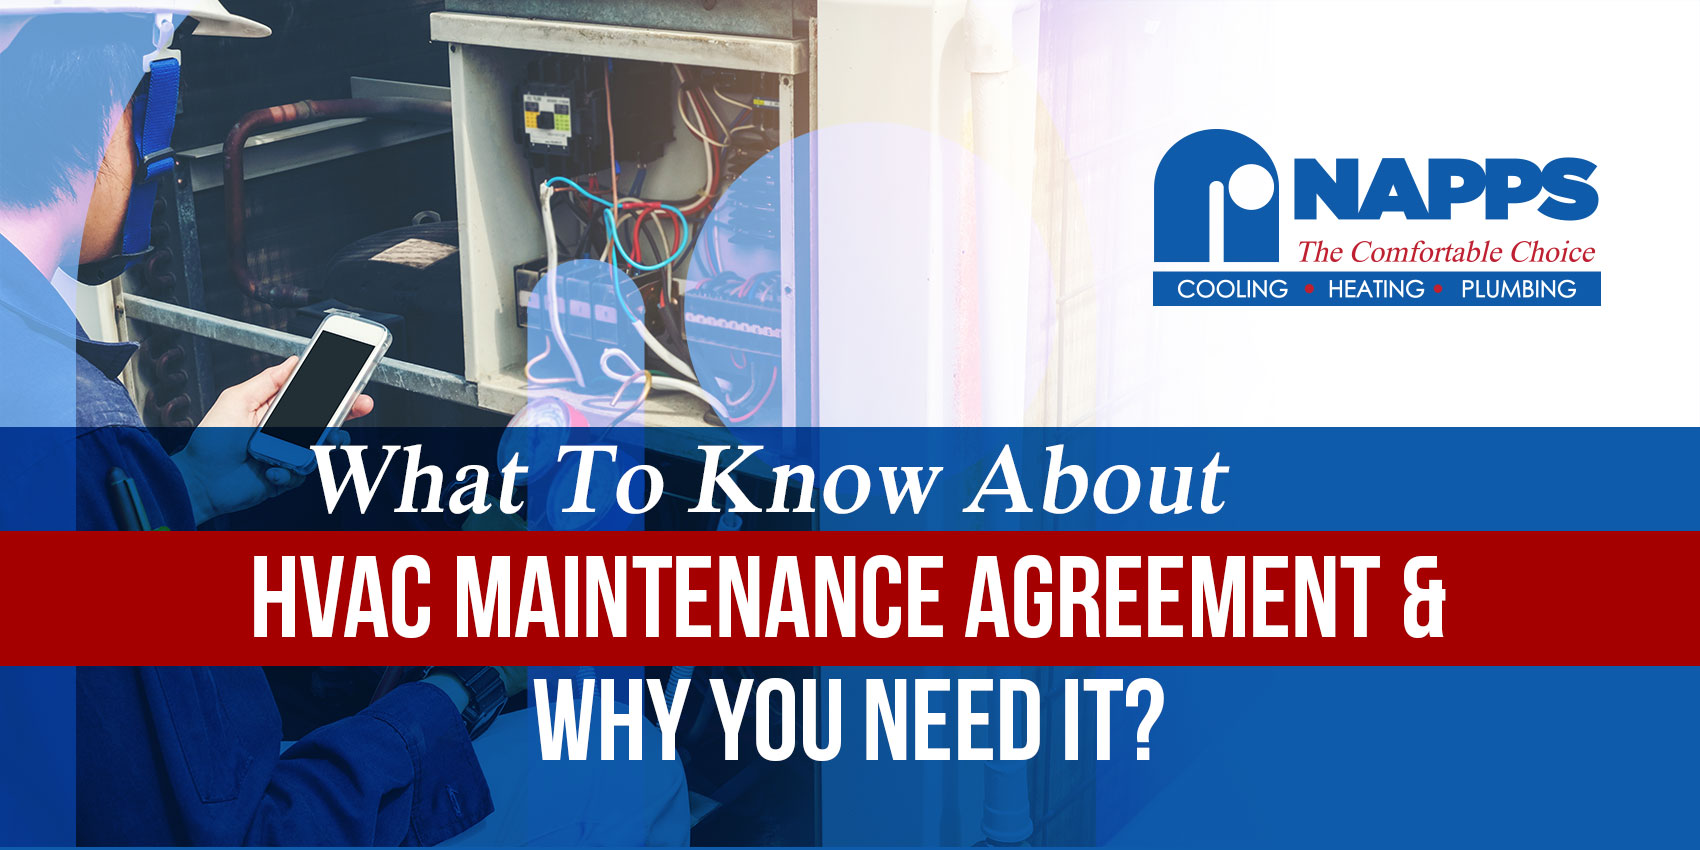 What To Know About HVAC Maintenance Agreement & Why You Need It?